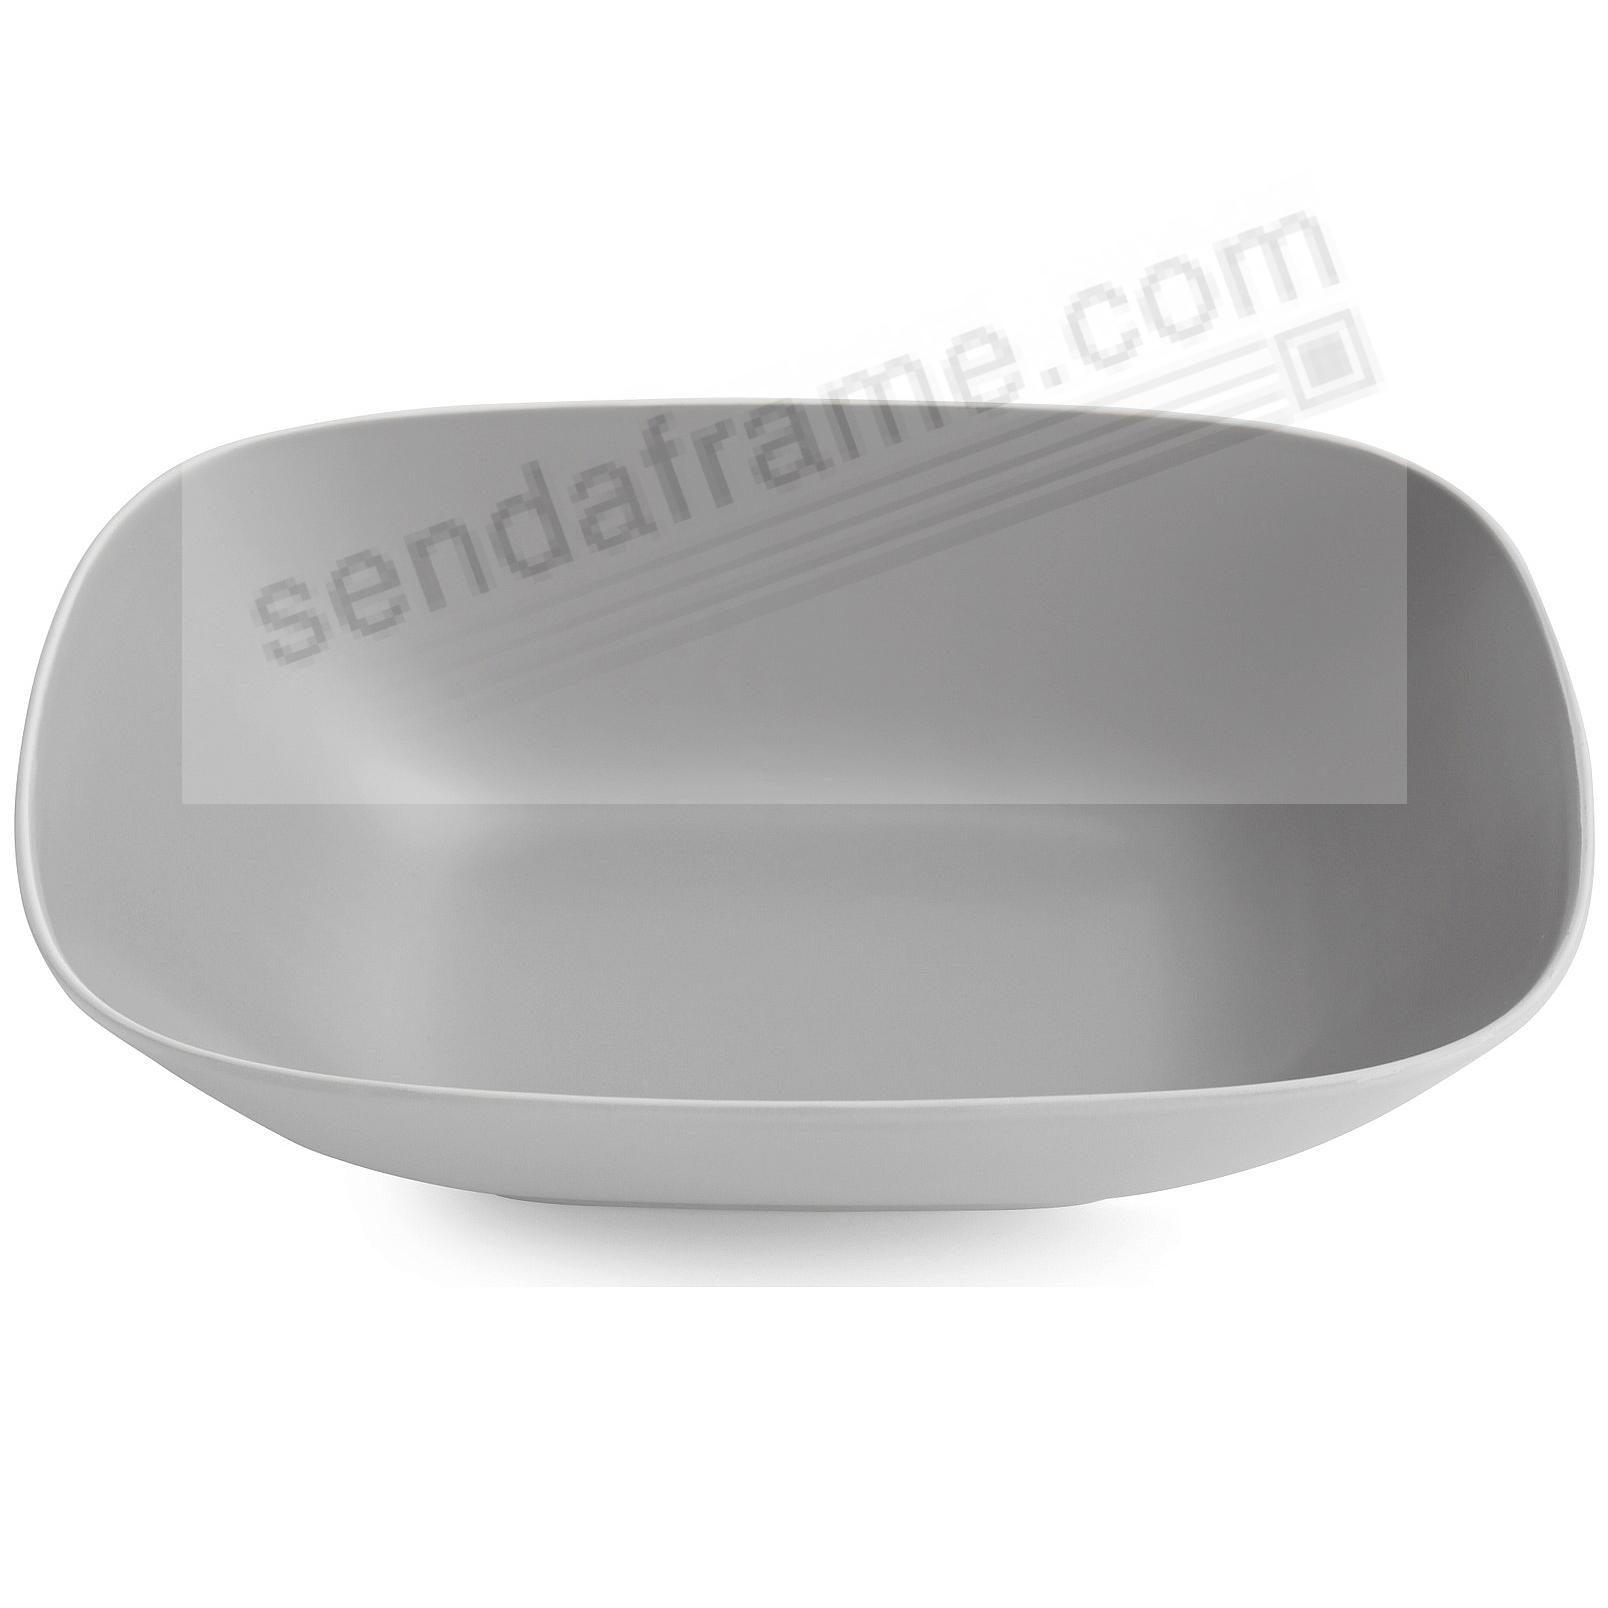 POP SOFT SQUARE SERVING BOWL SLATE-GREY by Nambe®